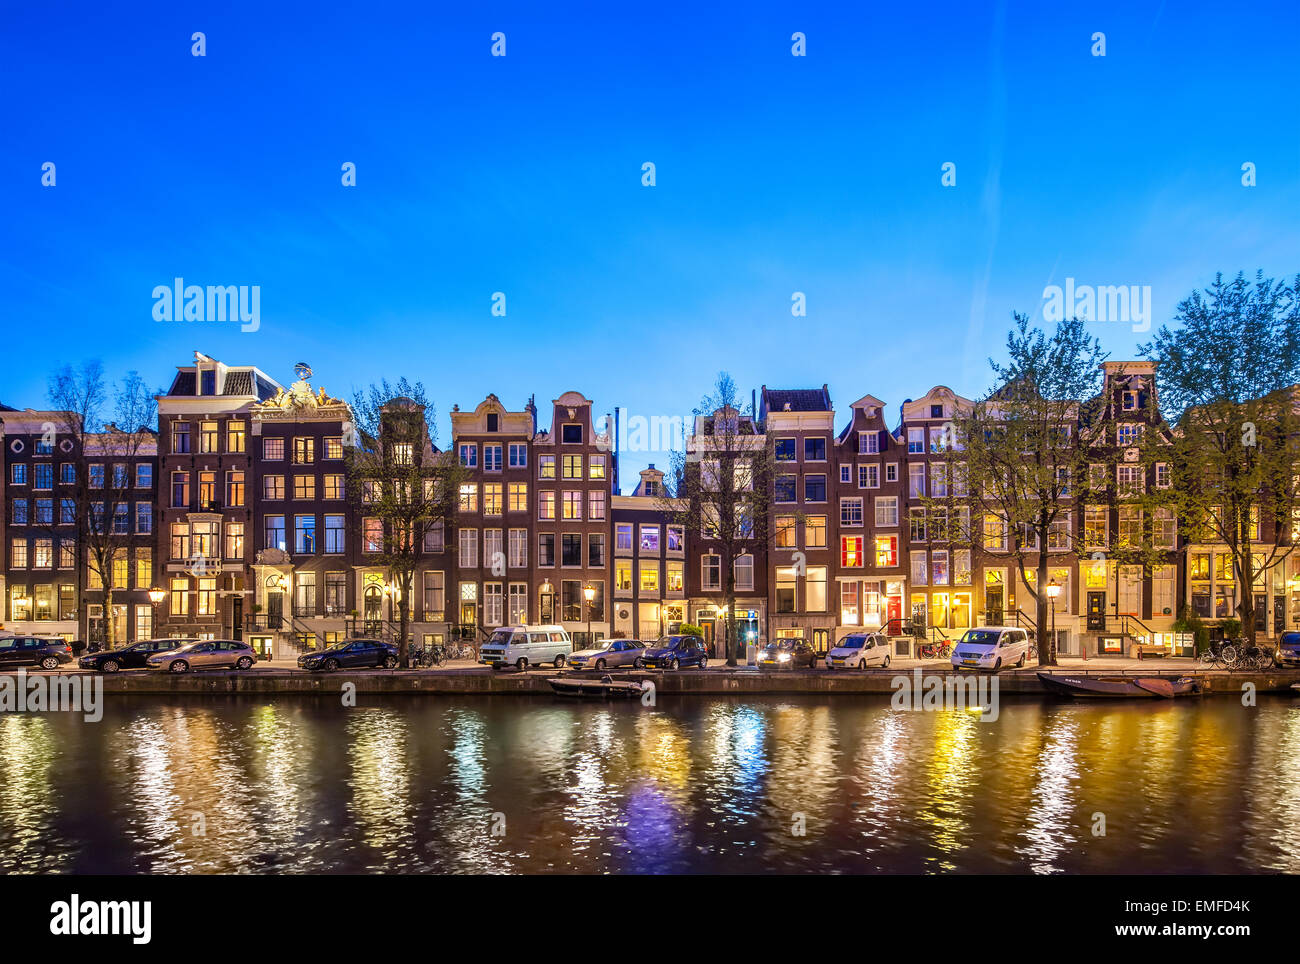 Historic Houses Amsterdam Singel 396 - 366 at night. Amsterdam Canal houses romantic scenic view at sunset. - Stock Image